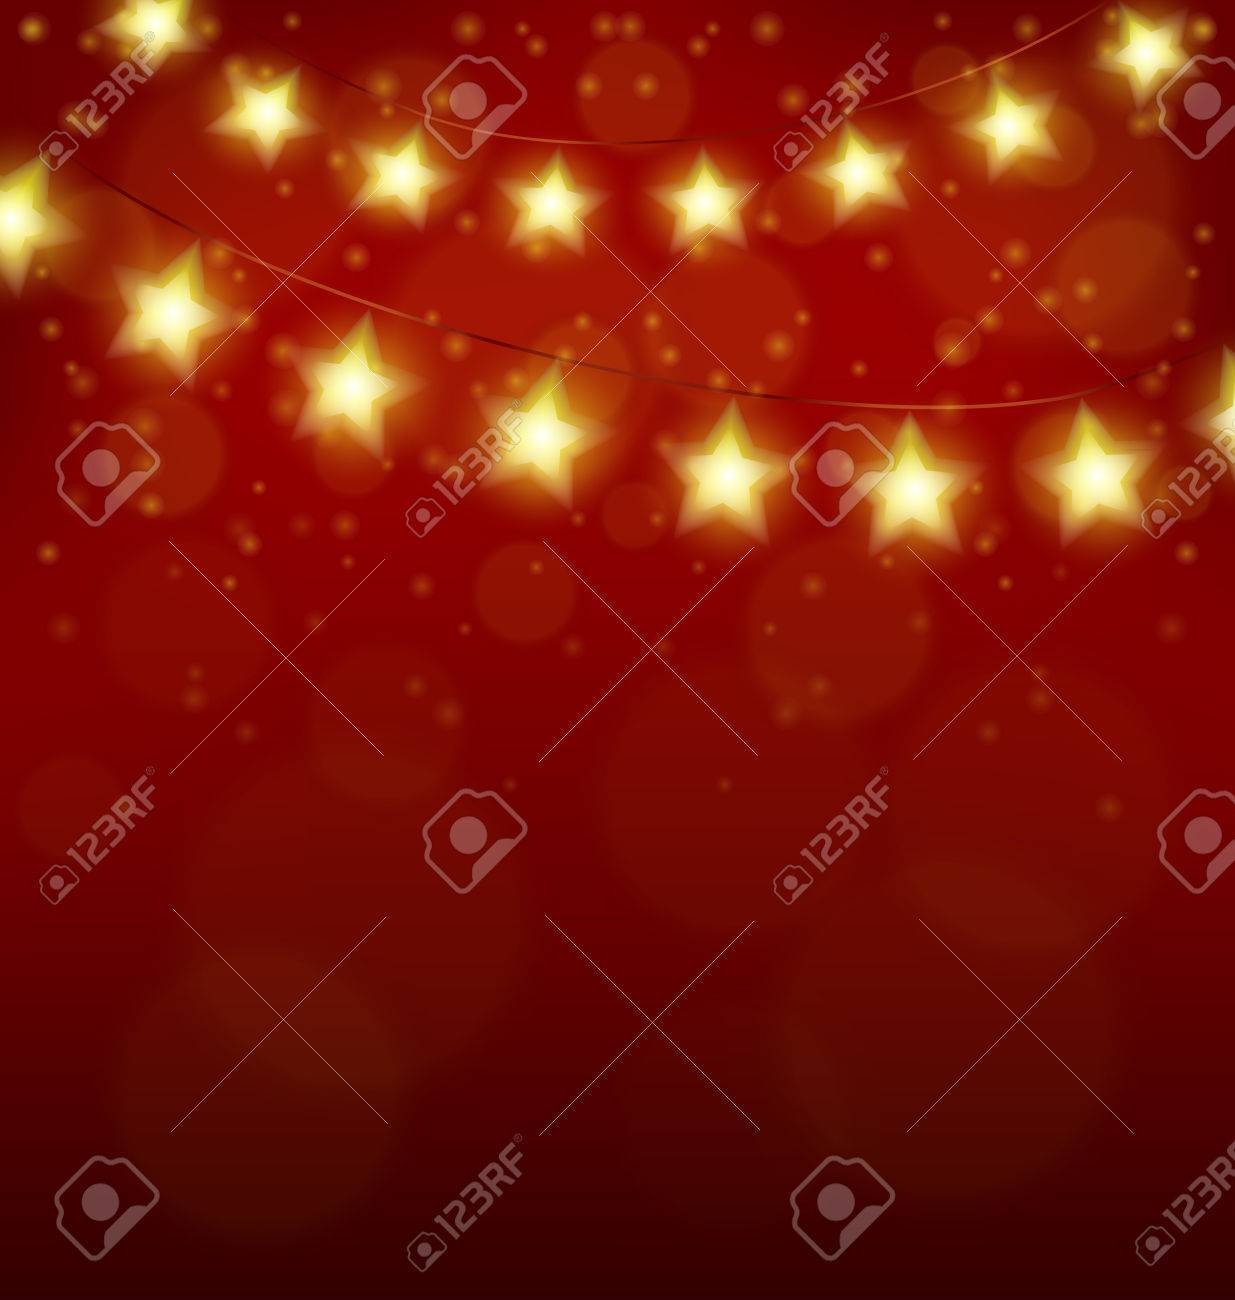 golden led christmas lights in form of stars on red background stock vector 34824606